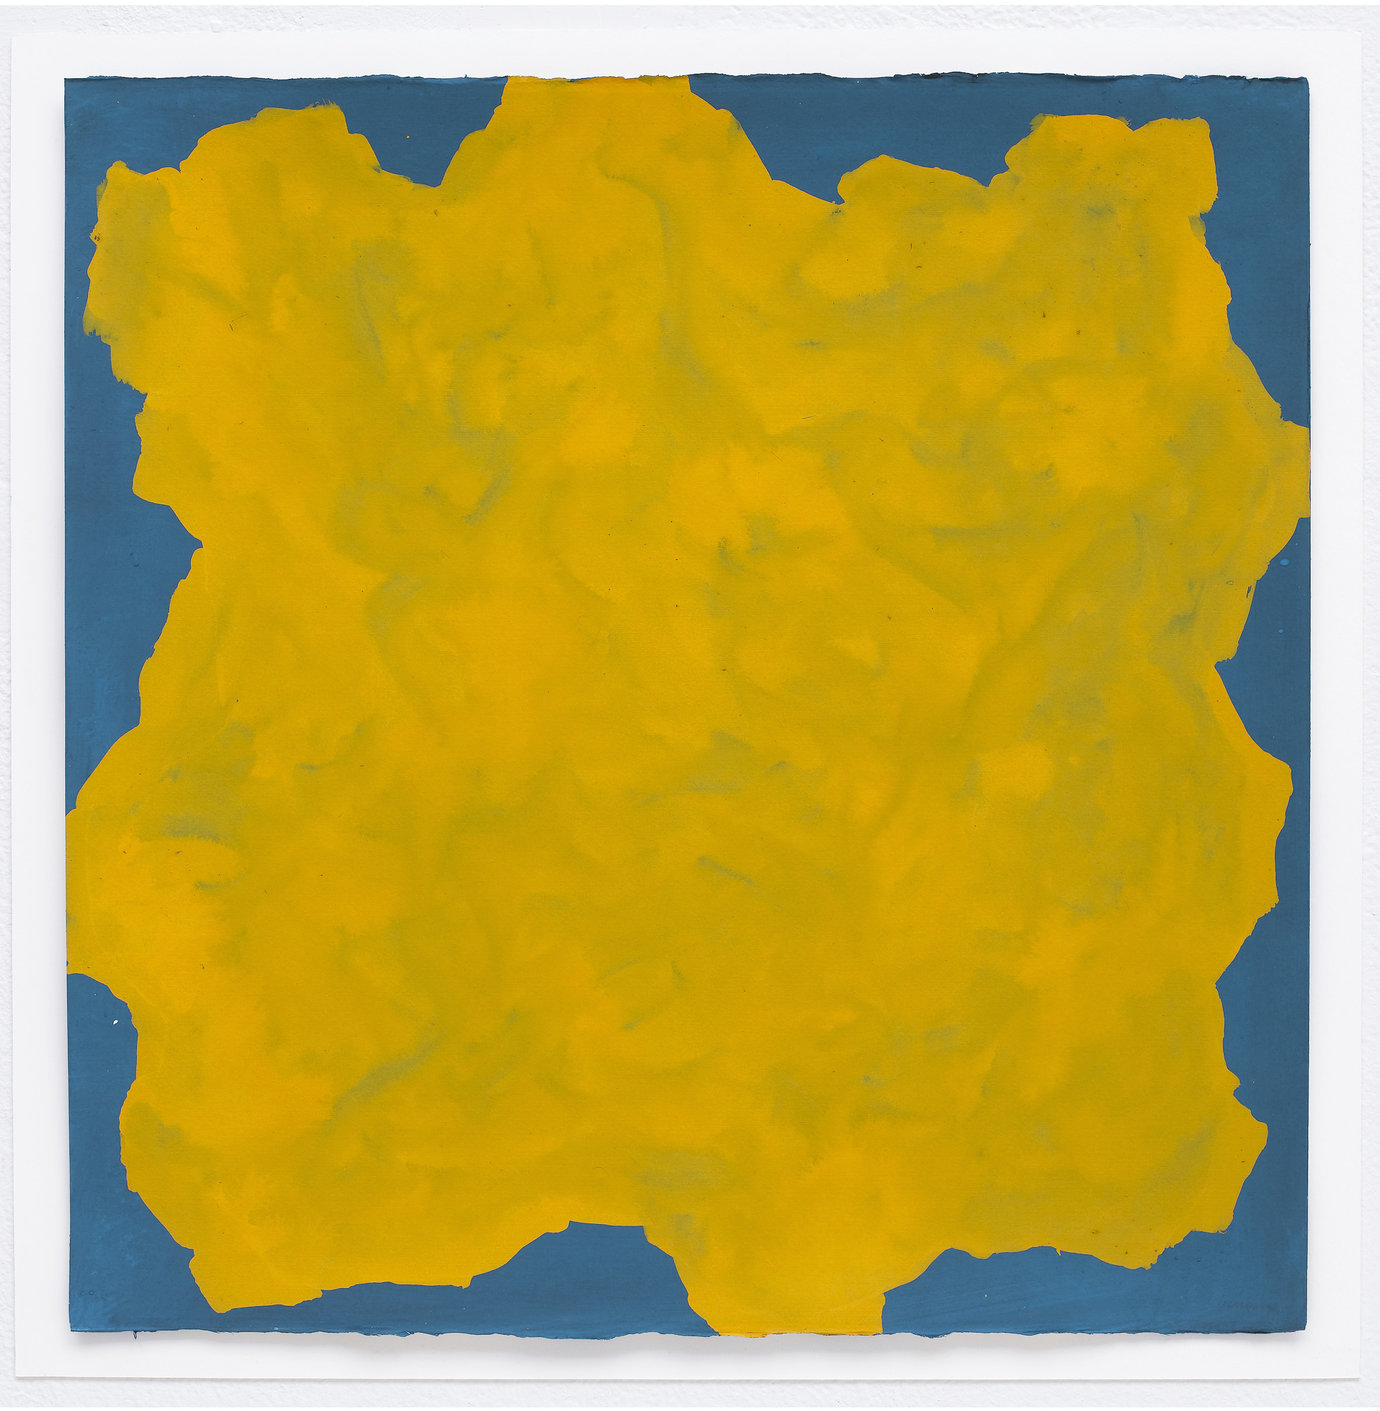 ", 1998. Gouache on paper, 25-1/4"" x 25-1/4"" (64.1 cm x 64.1 cm)."